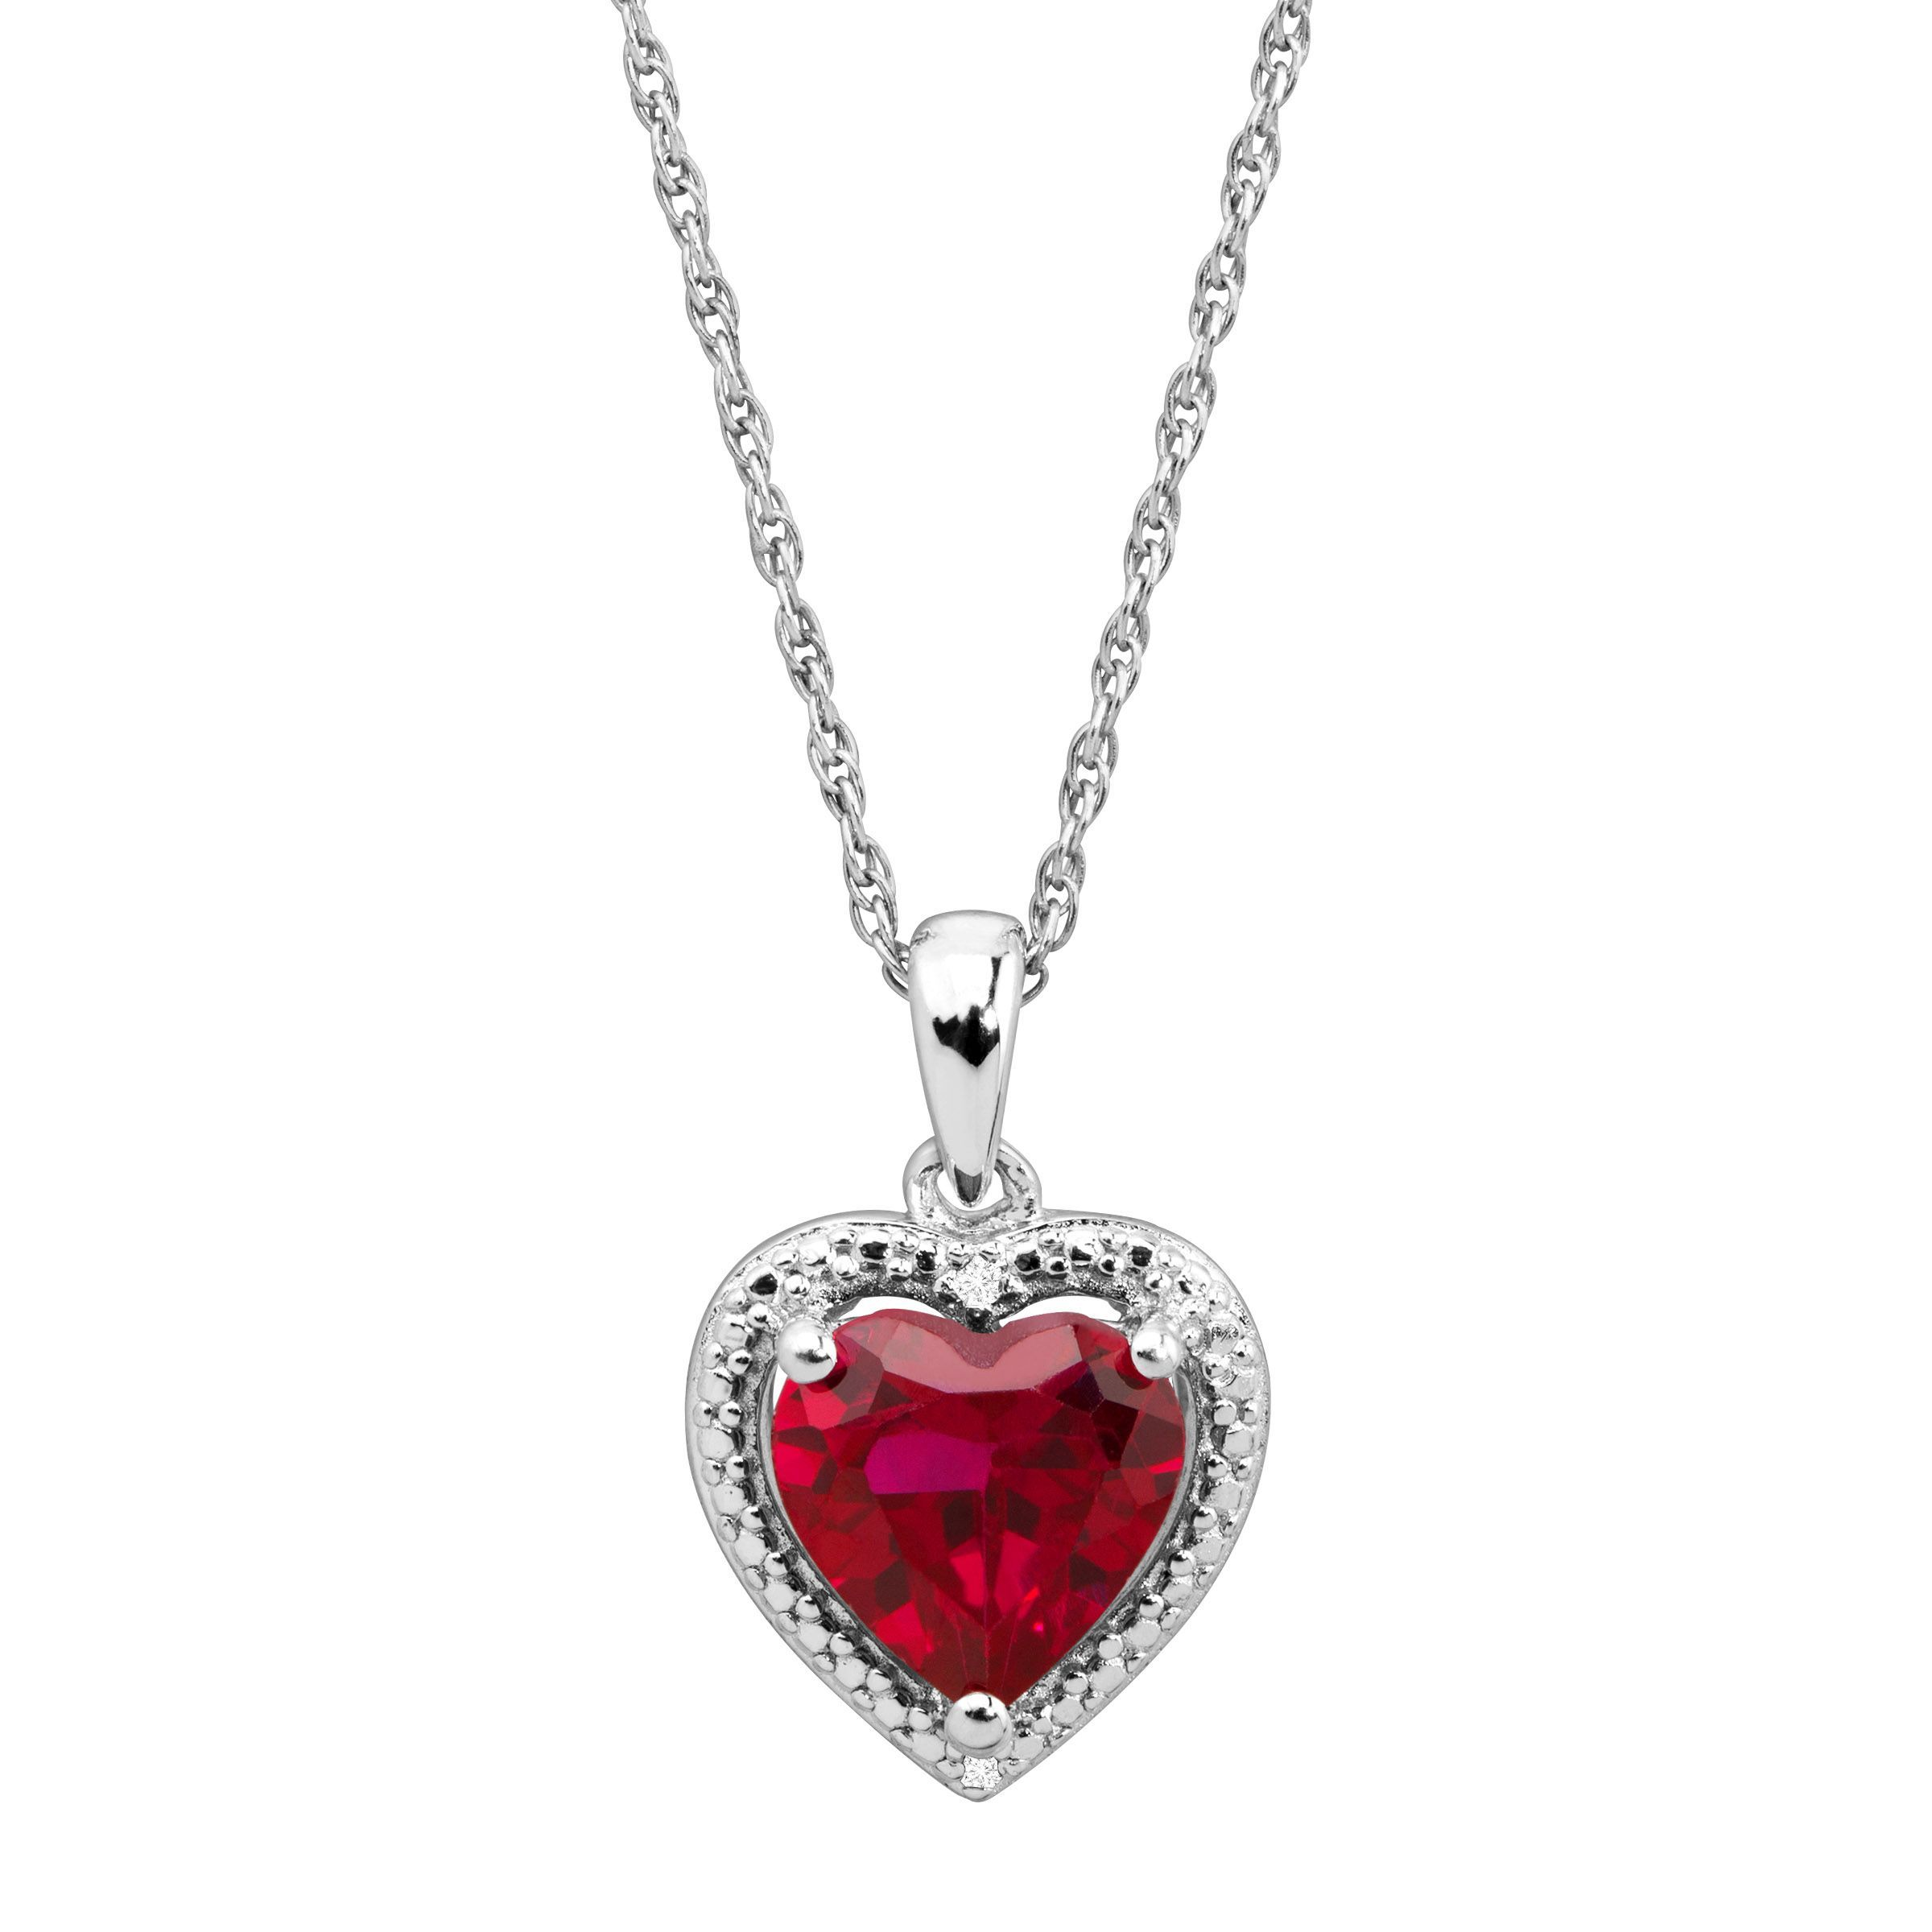 1 58 ct created ruby heart pendant with diamonds in sterling silver 1 58 ct created ruby heart pendant with diamonds in sterling silver aloadofball Image collections